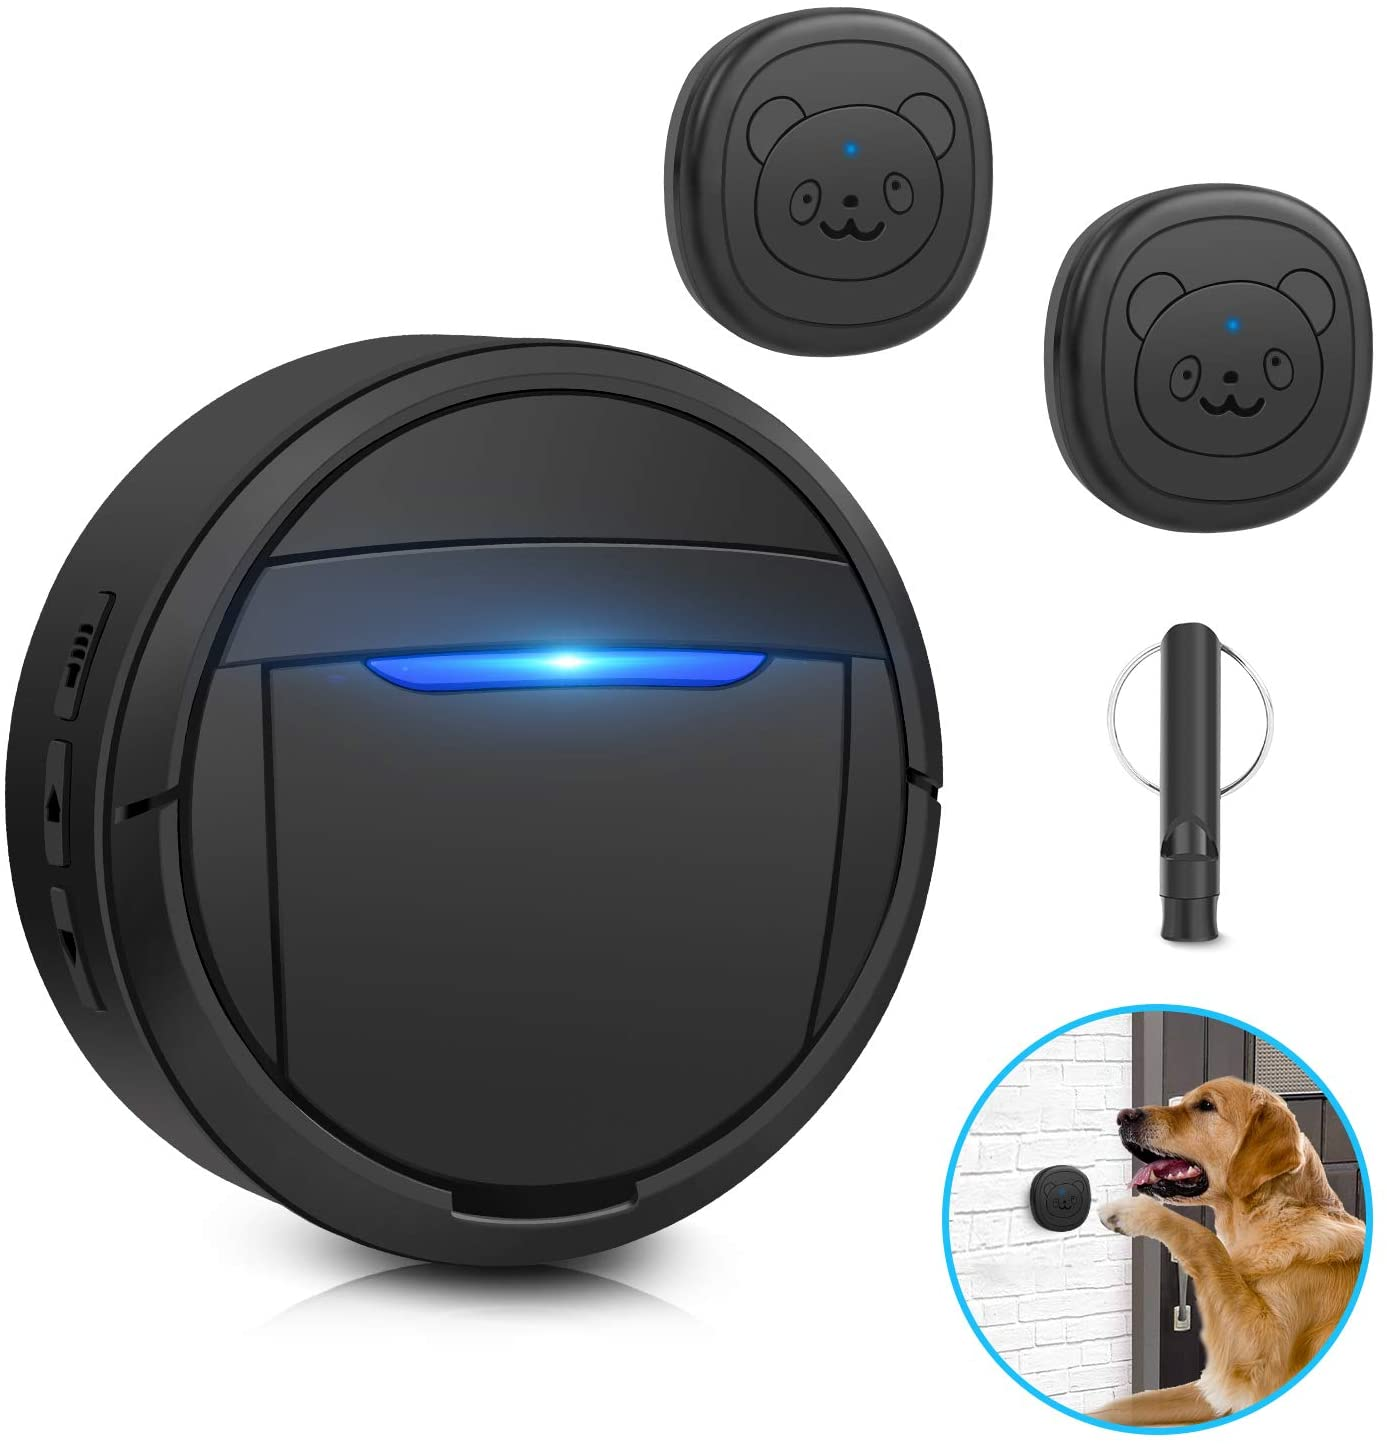 Kytely Dog Doorbells for Potty Training